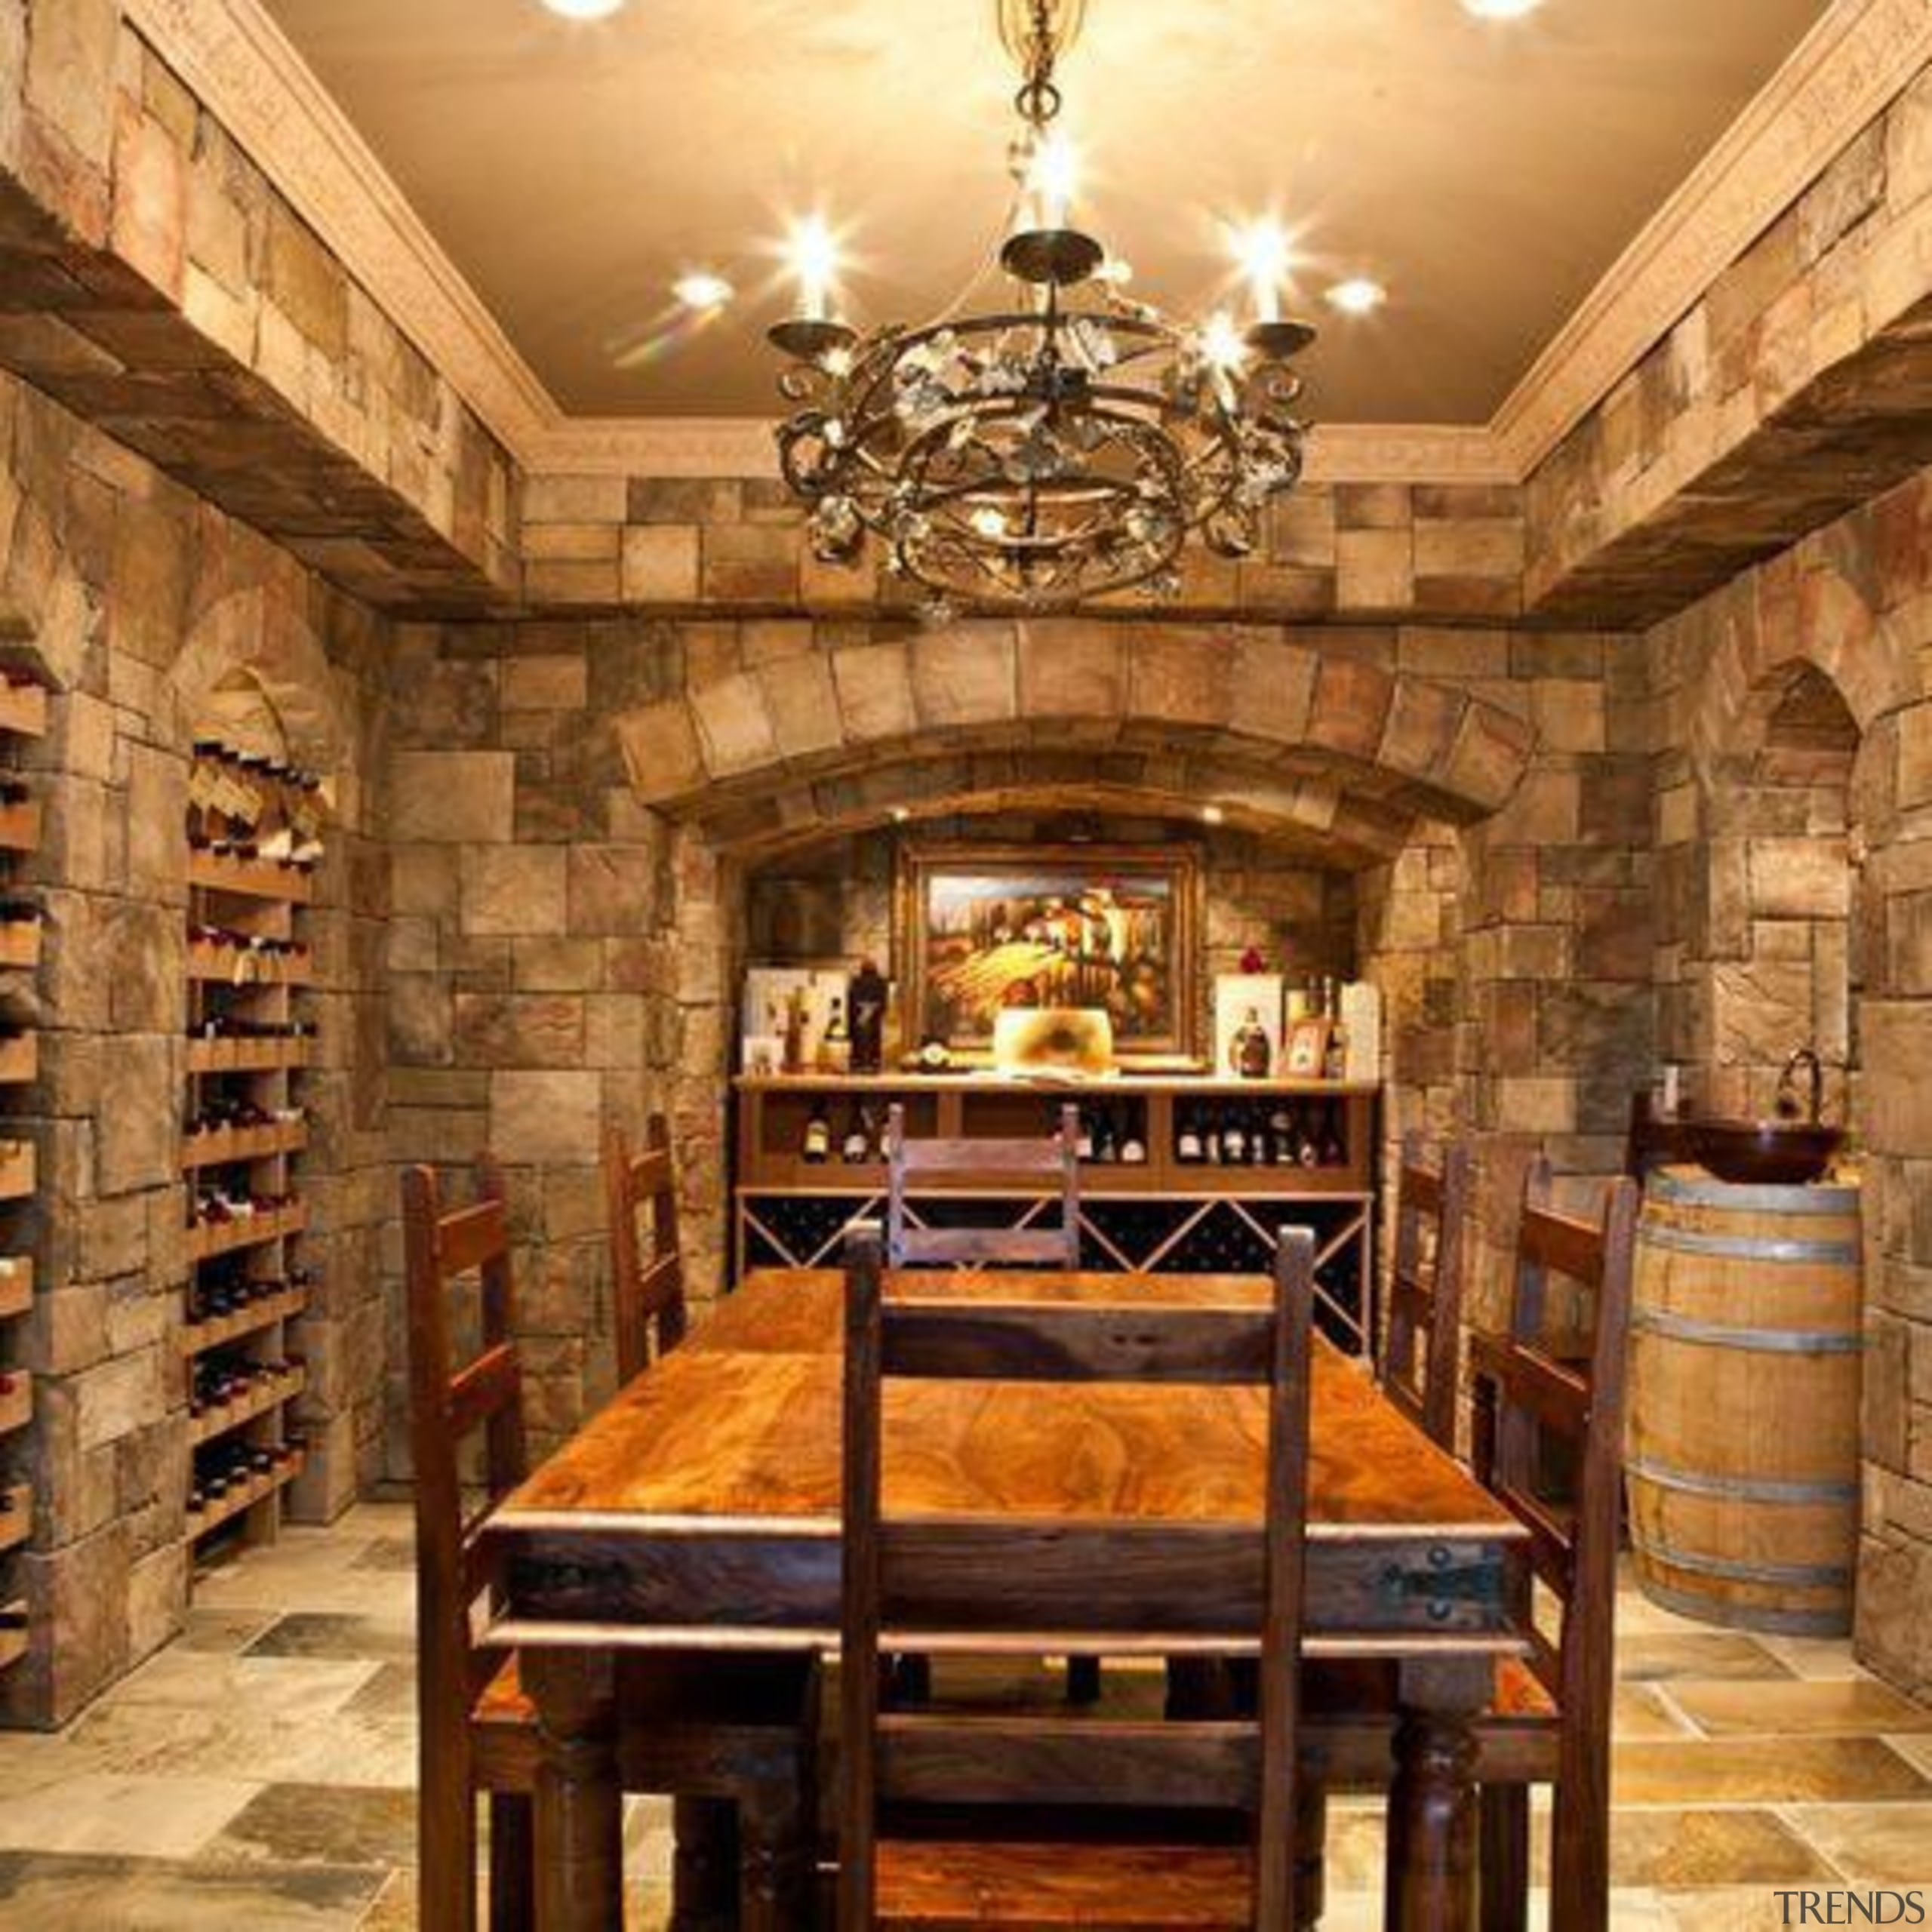 Modern Wine Cellar Ideas - Modern Wine Cellar ceiling, interior design, lobby, wine cellar, brown, orange